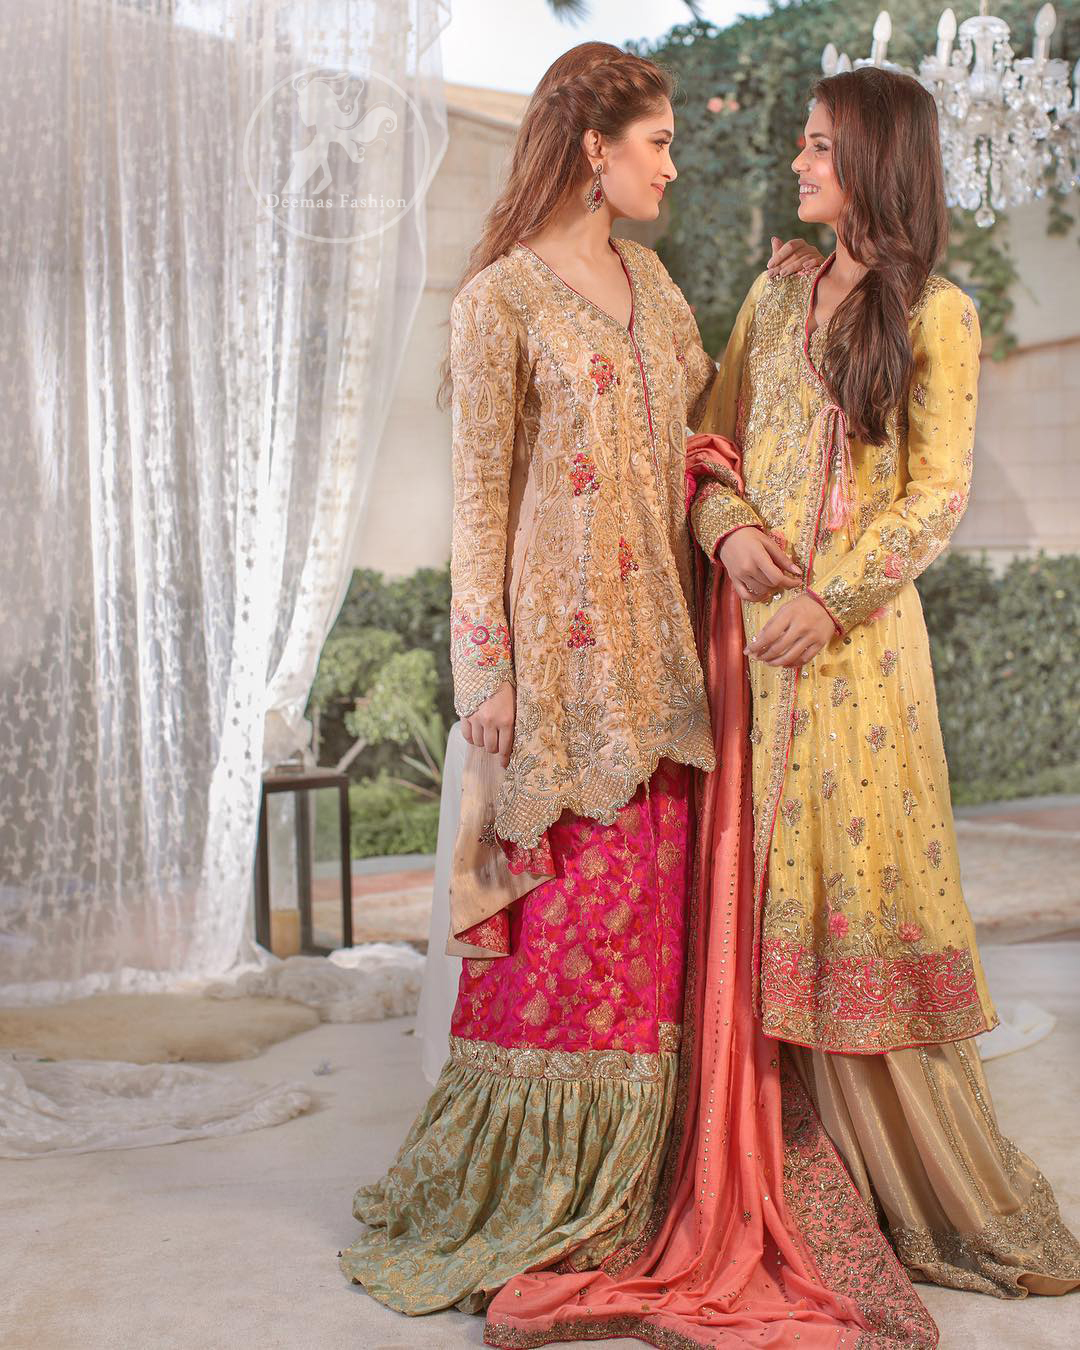 This outfit is perfect for mehendi mayon day. Heavily embellished in the front with intricate embroidered pattern done with golden kora dabka, kundan, tilla and sequins. Hemline is enhanced with peach embellished border adorned with kora dabka and thread embroidery. It is paired up with antique brass sharara with zerdosi work details on bottom. Dupatta having four sided embroidered edges and sequins spray.